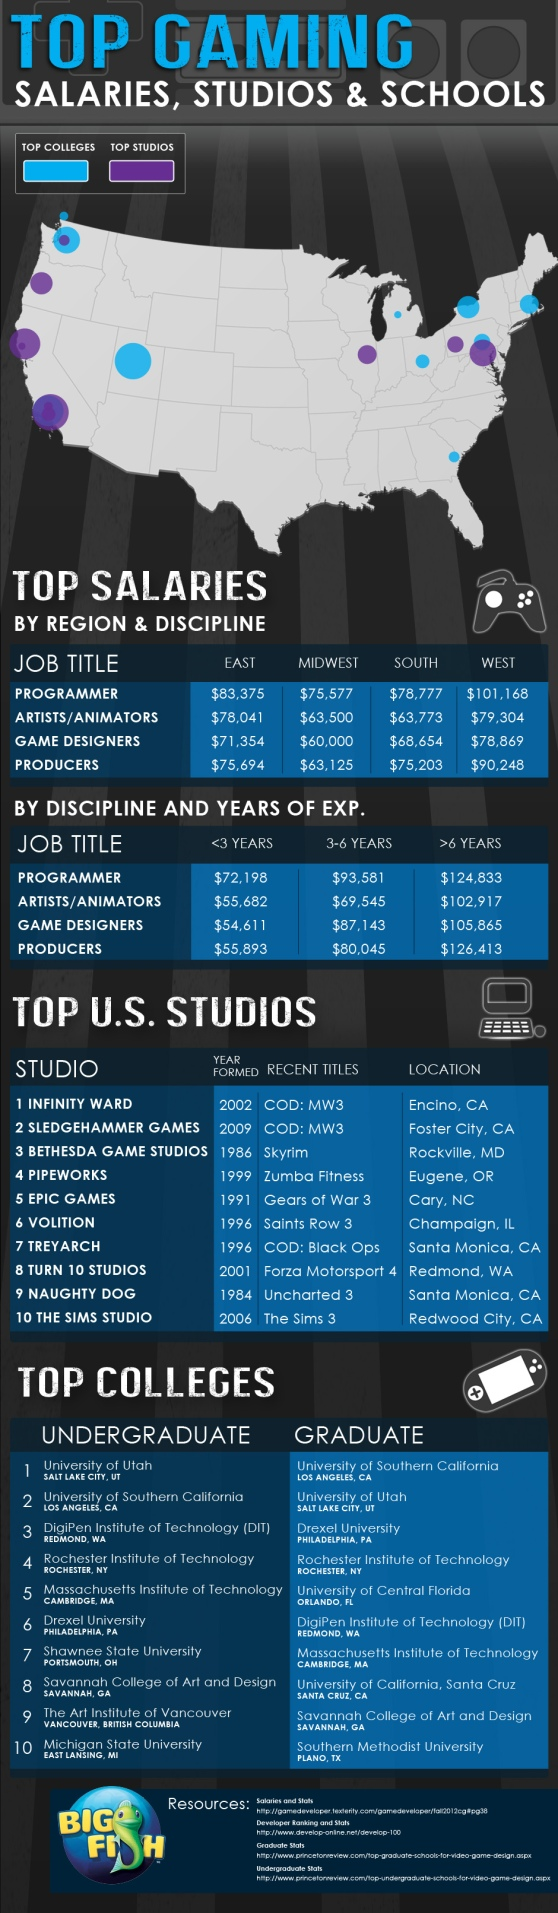 Top colleges and salaries in gaming